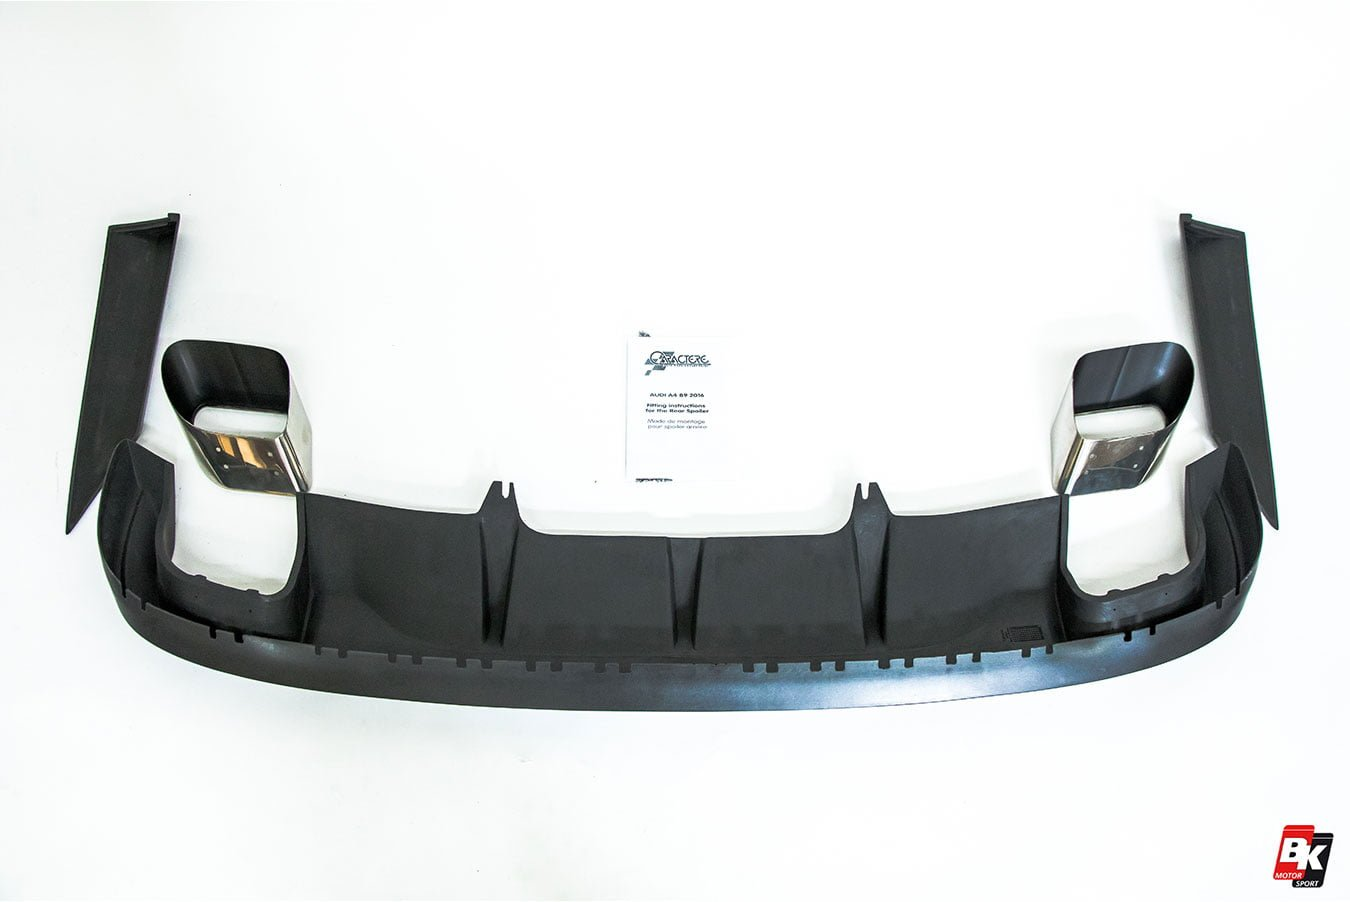 Caractere Rear Diffuser with Integrated Exhaust Tips, fits Audi A4 B9 2.0 TFSI